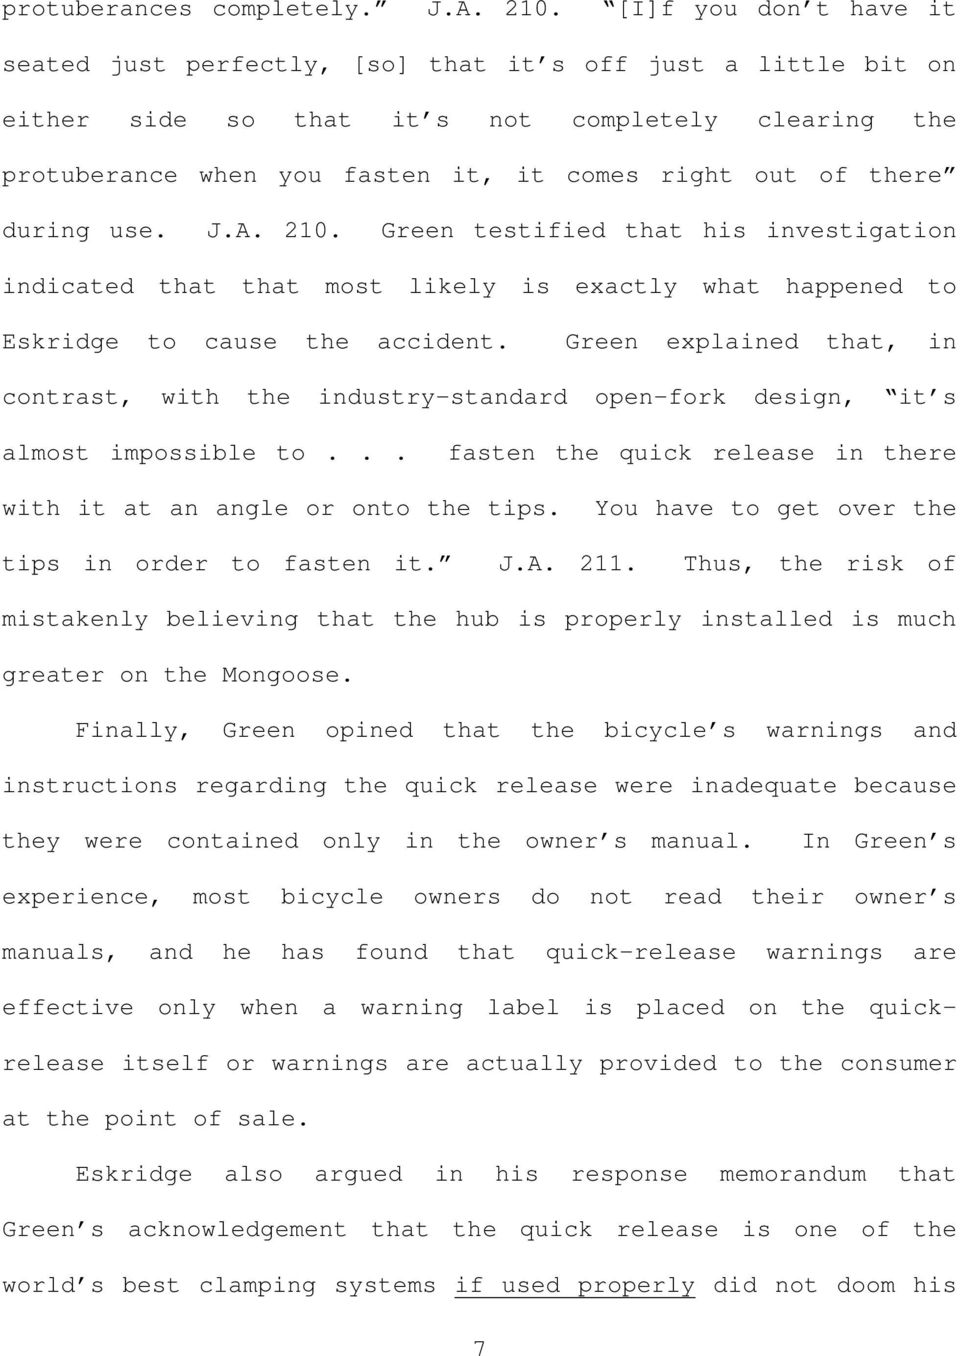 during use. J.A. 210. Green testified that his investigation indicated that that most likely is exactly what happened to Eskridge to cause the accident.